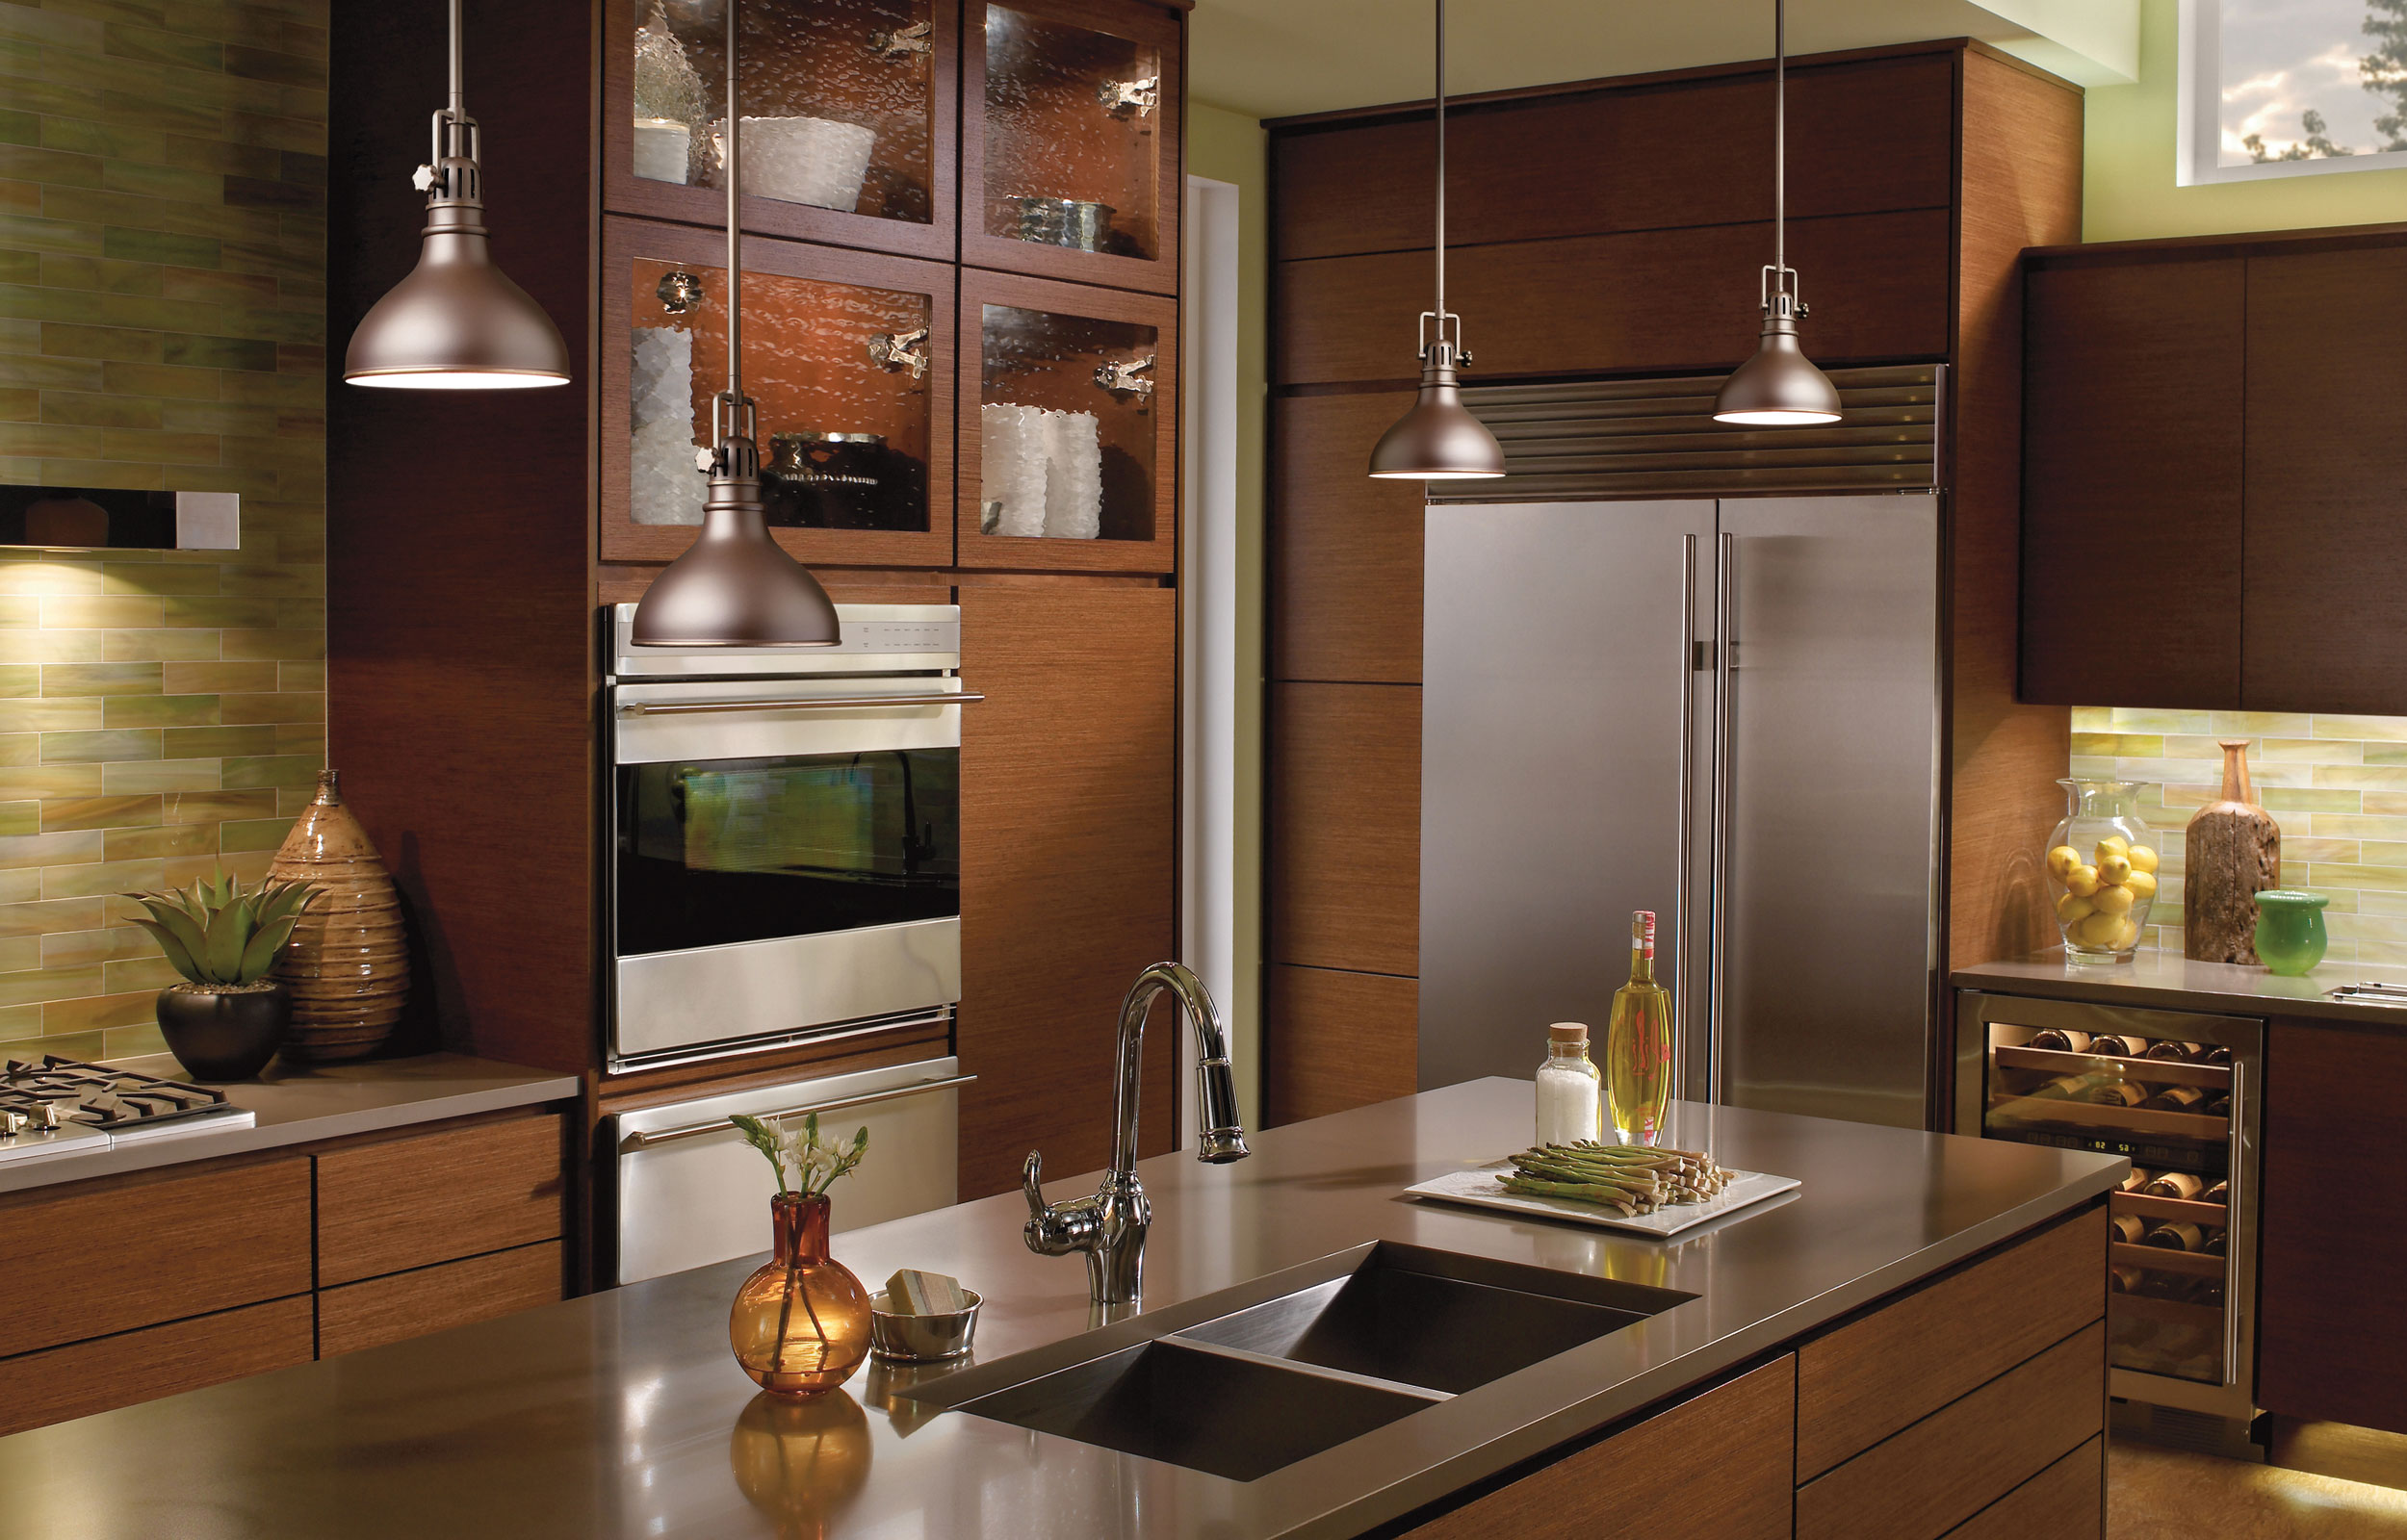 Light Fixtures For Kitchen On Kitchen Kitchen Lighting  Lightstyle Of Orlando